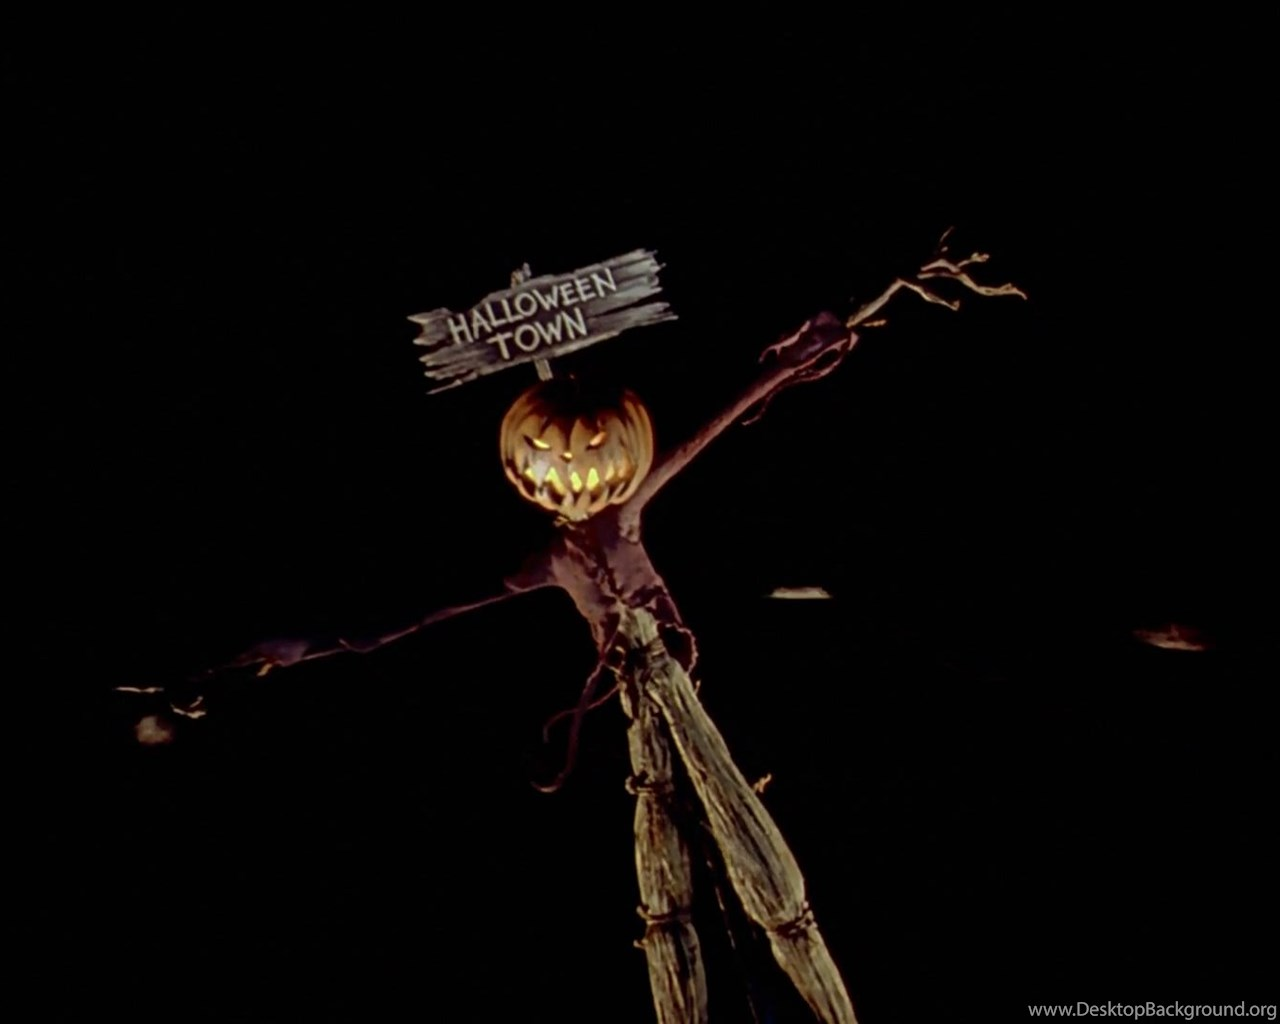 Nightmare Before Christmas Hd Desktop Wallpaper Jpg Desktop Background